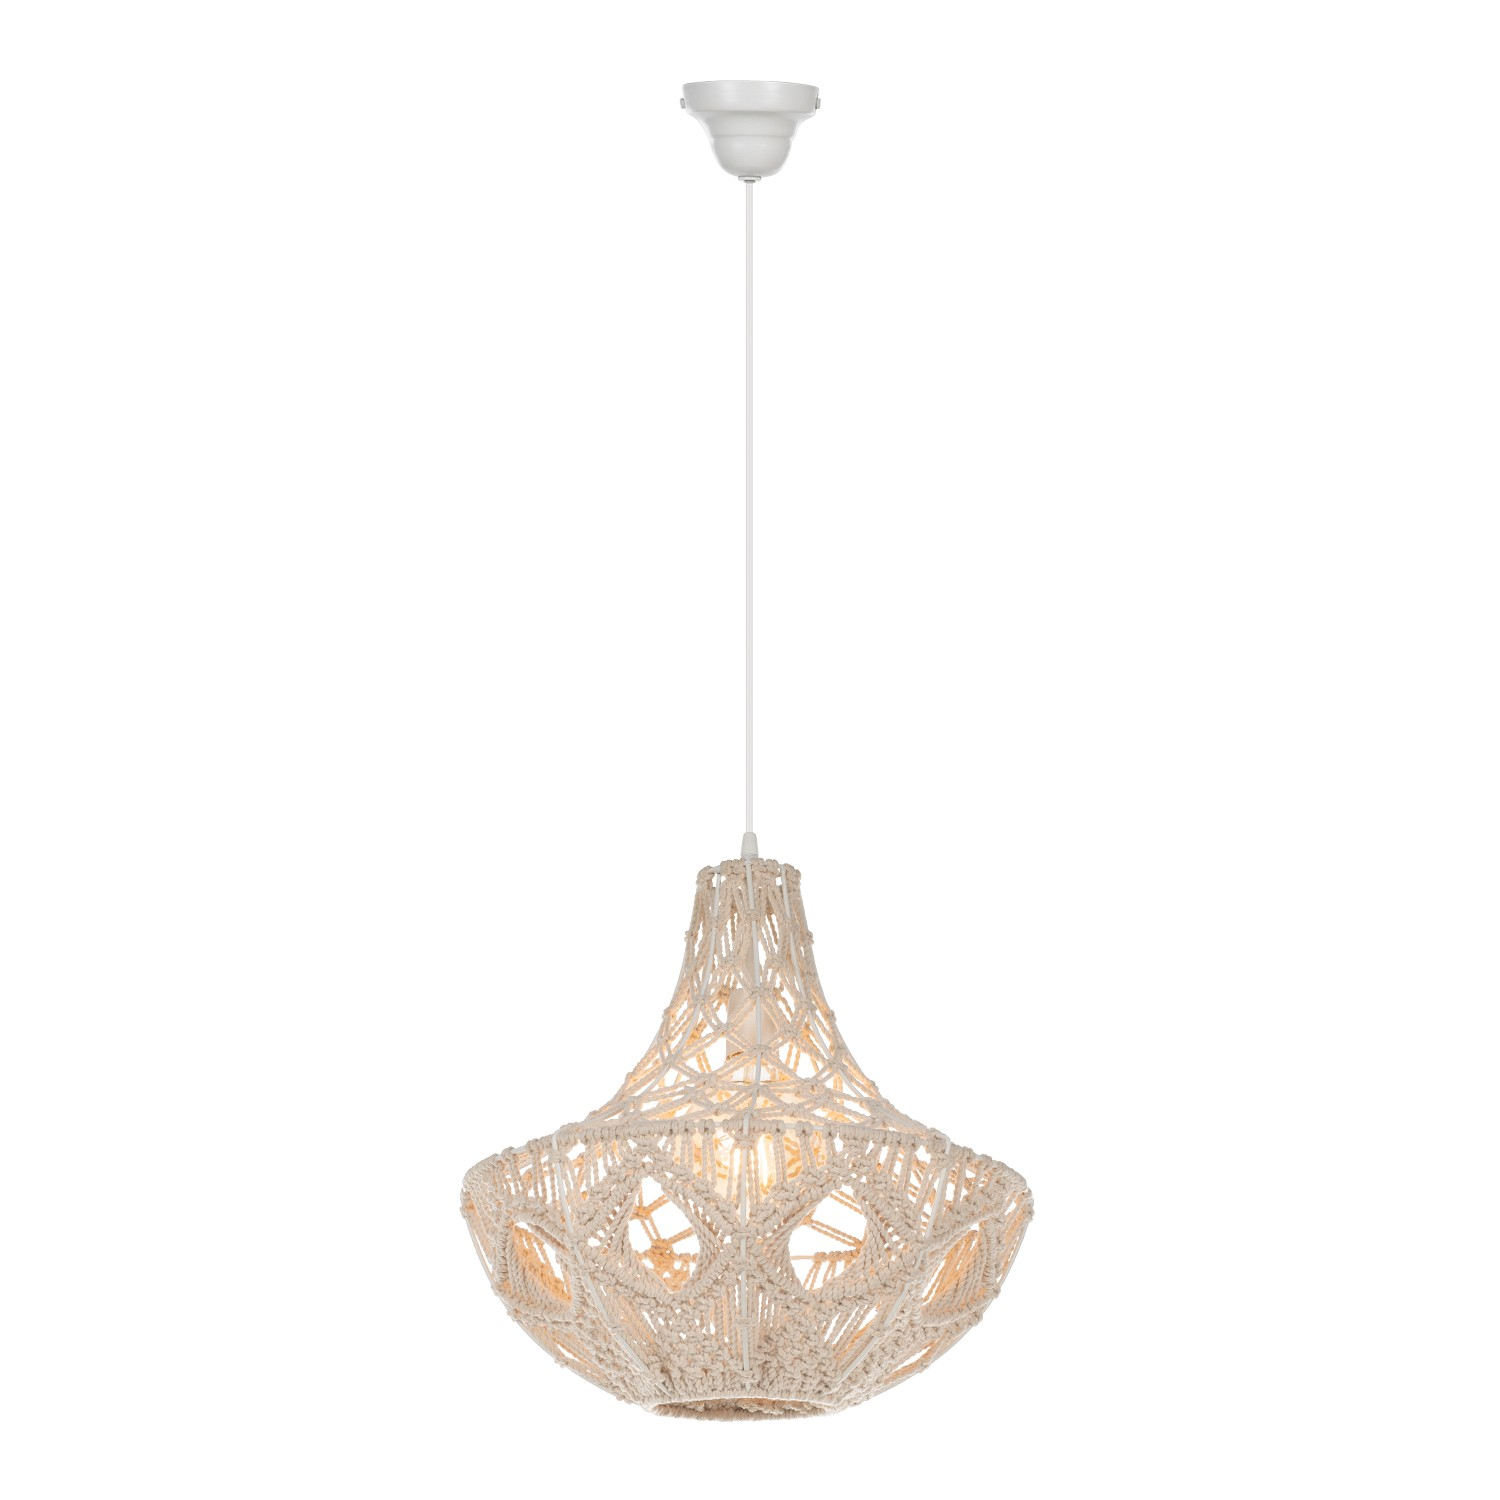 Eiroh Lamp, gallery image 1